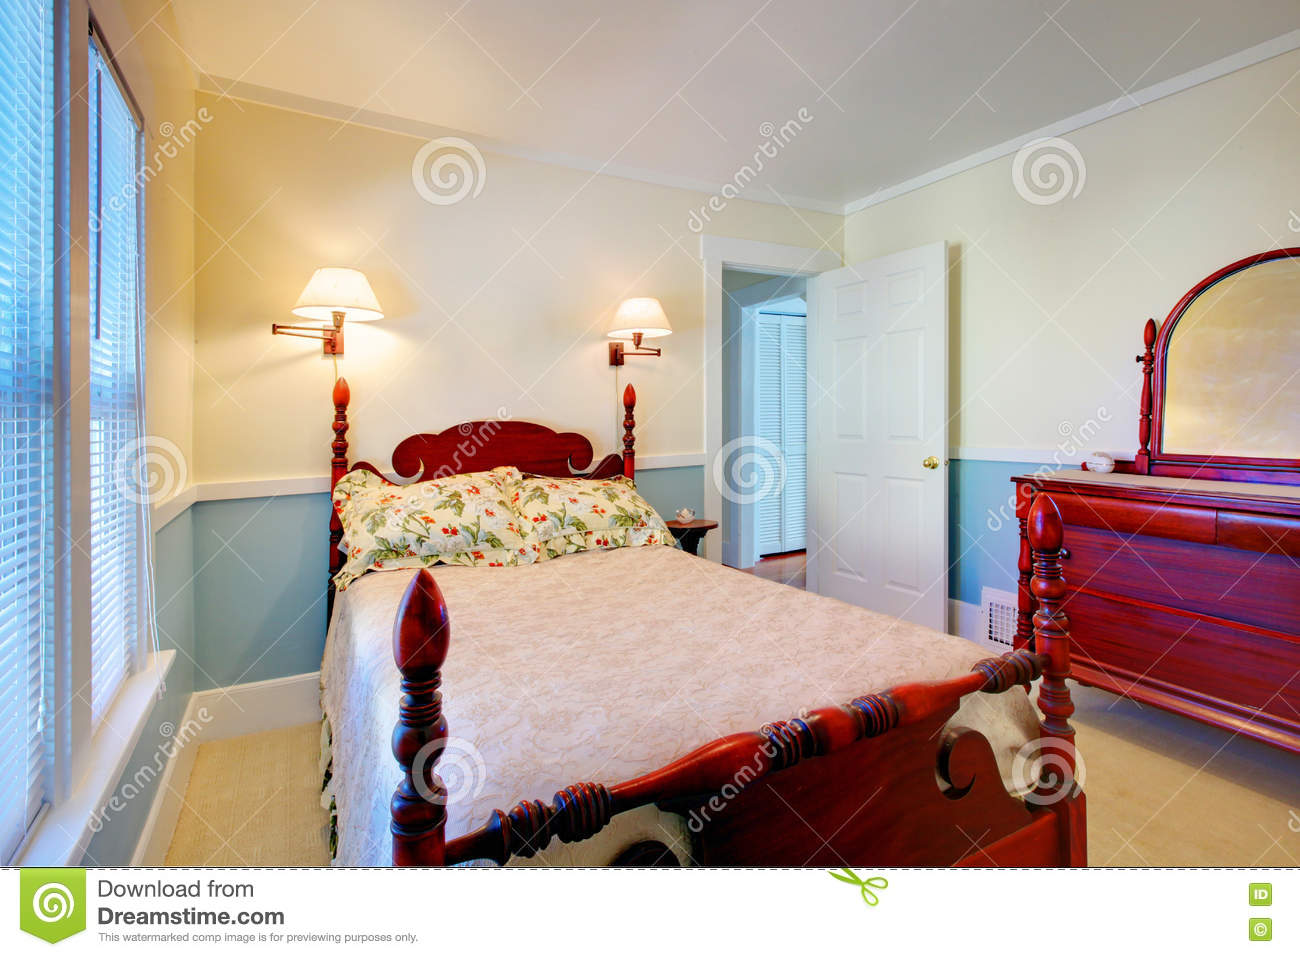 Blue And White Bedroom Interior With High Pole Carved Wood Bed Stock Image Image Of Inside Carved 73268513